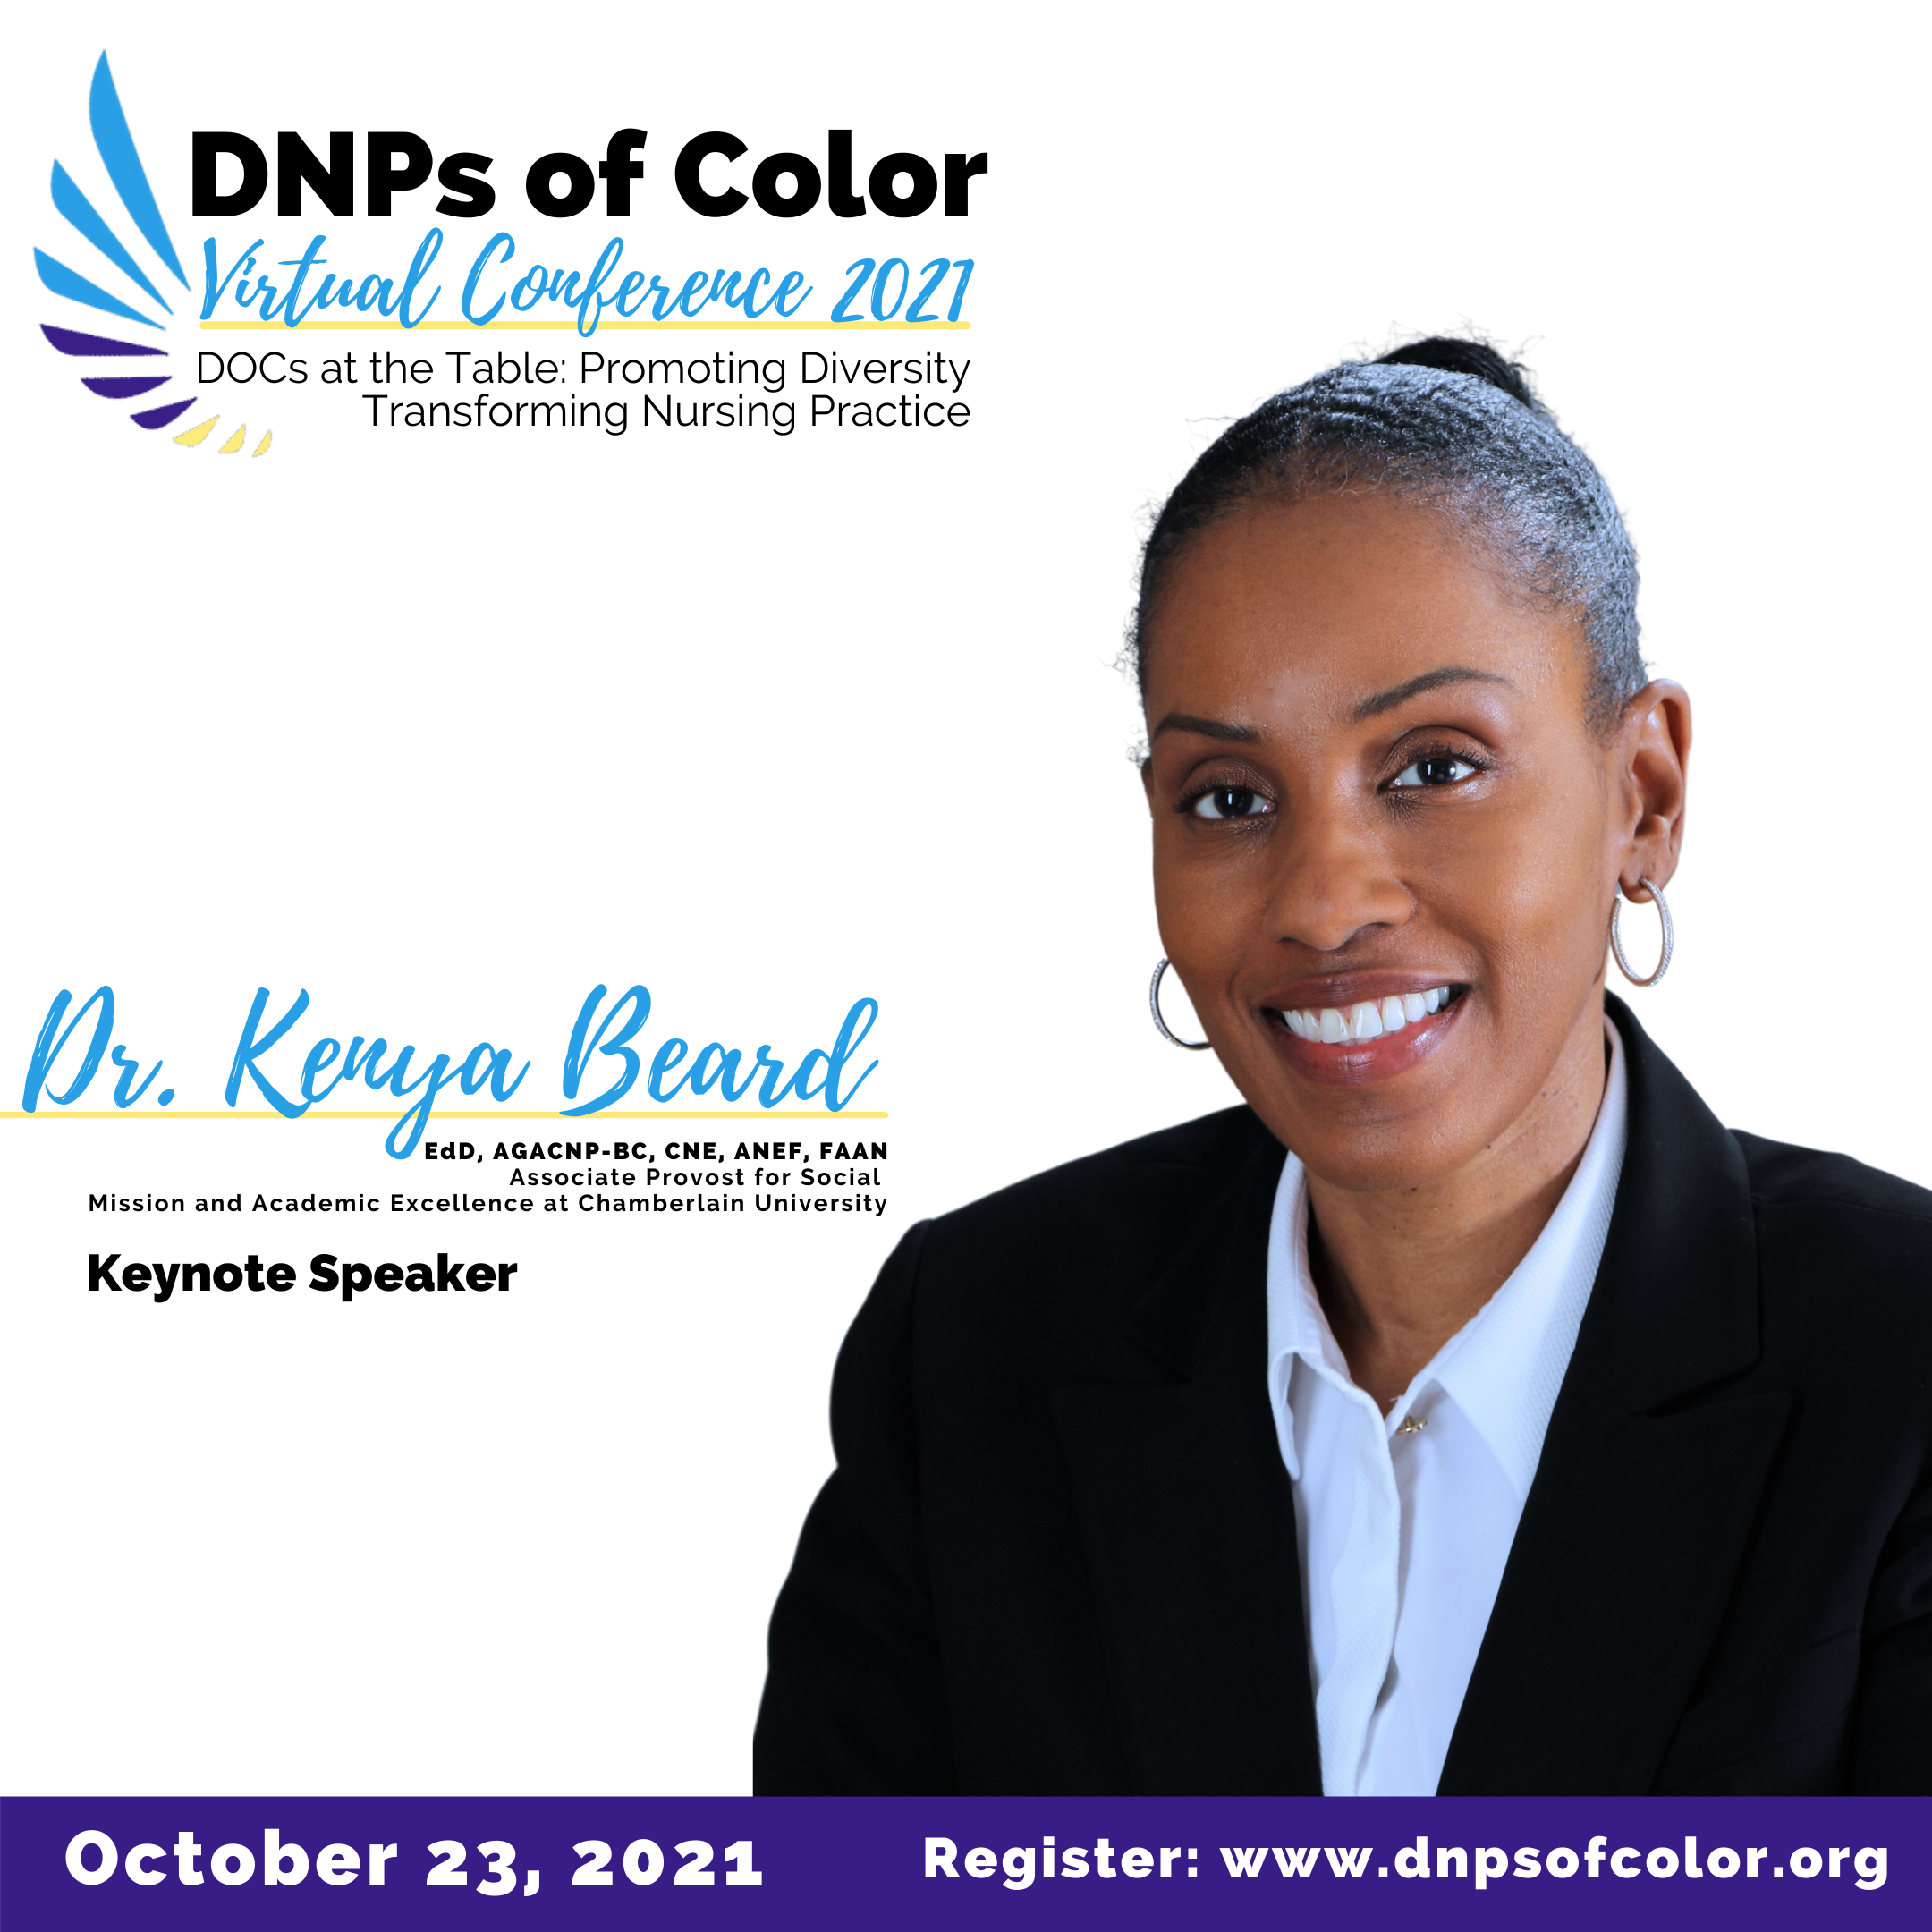 DNPs of Color Hosts Inaugural Virtual Conference